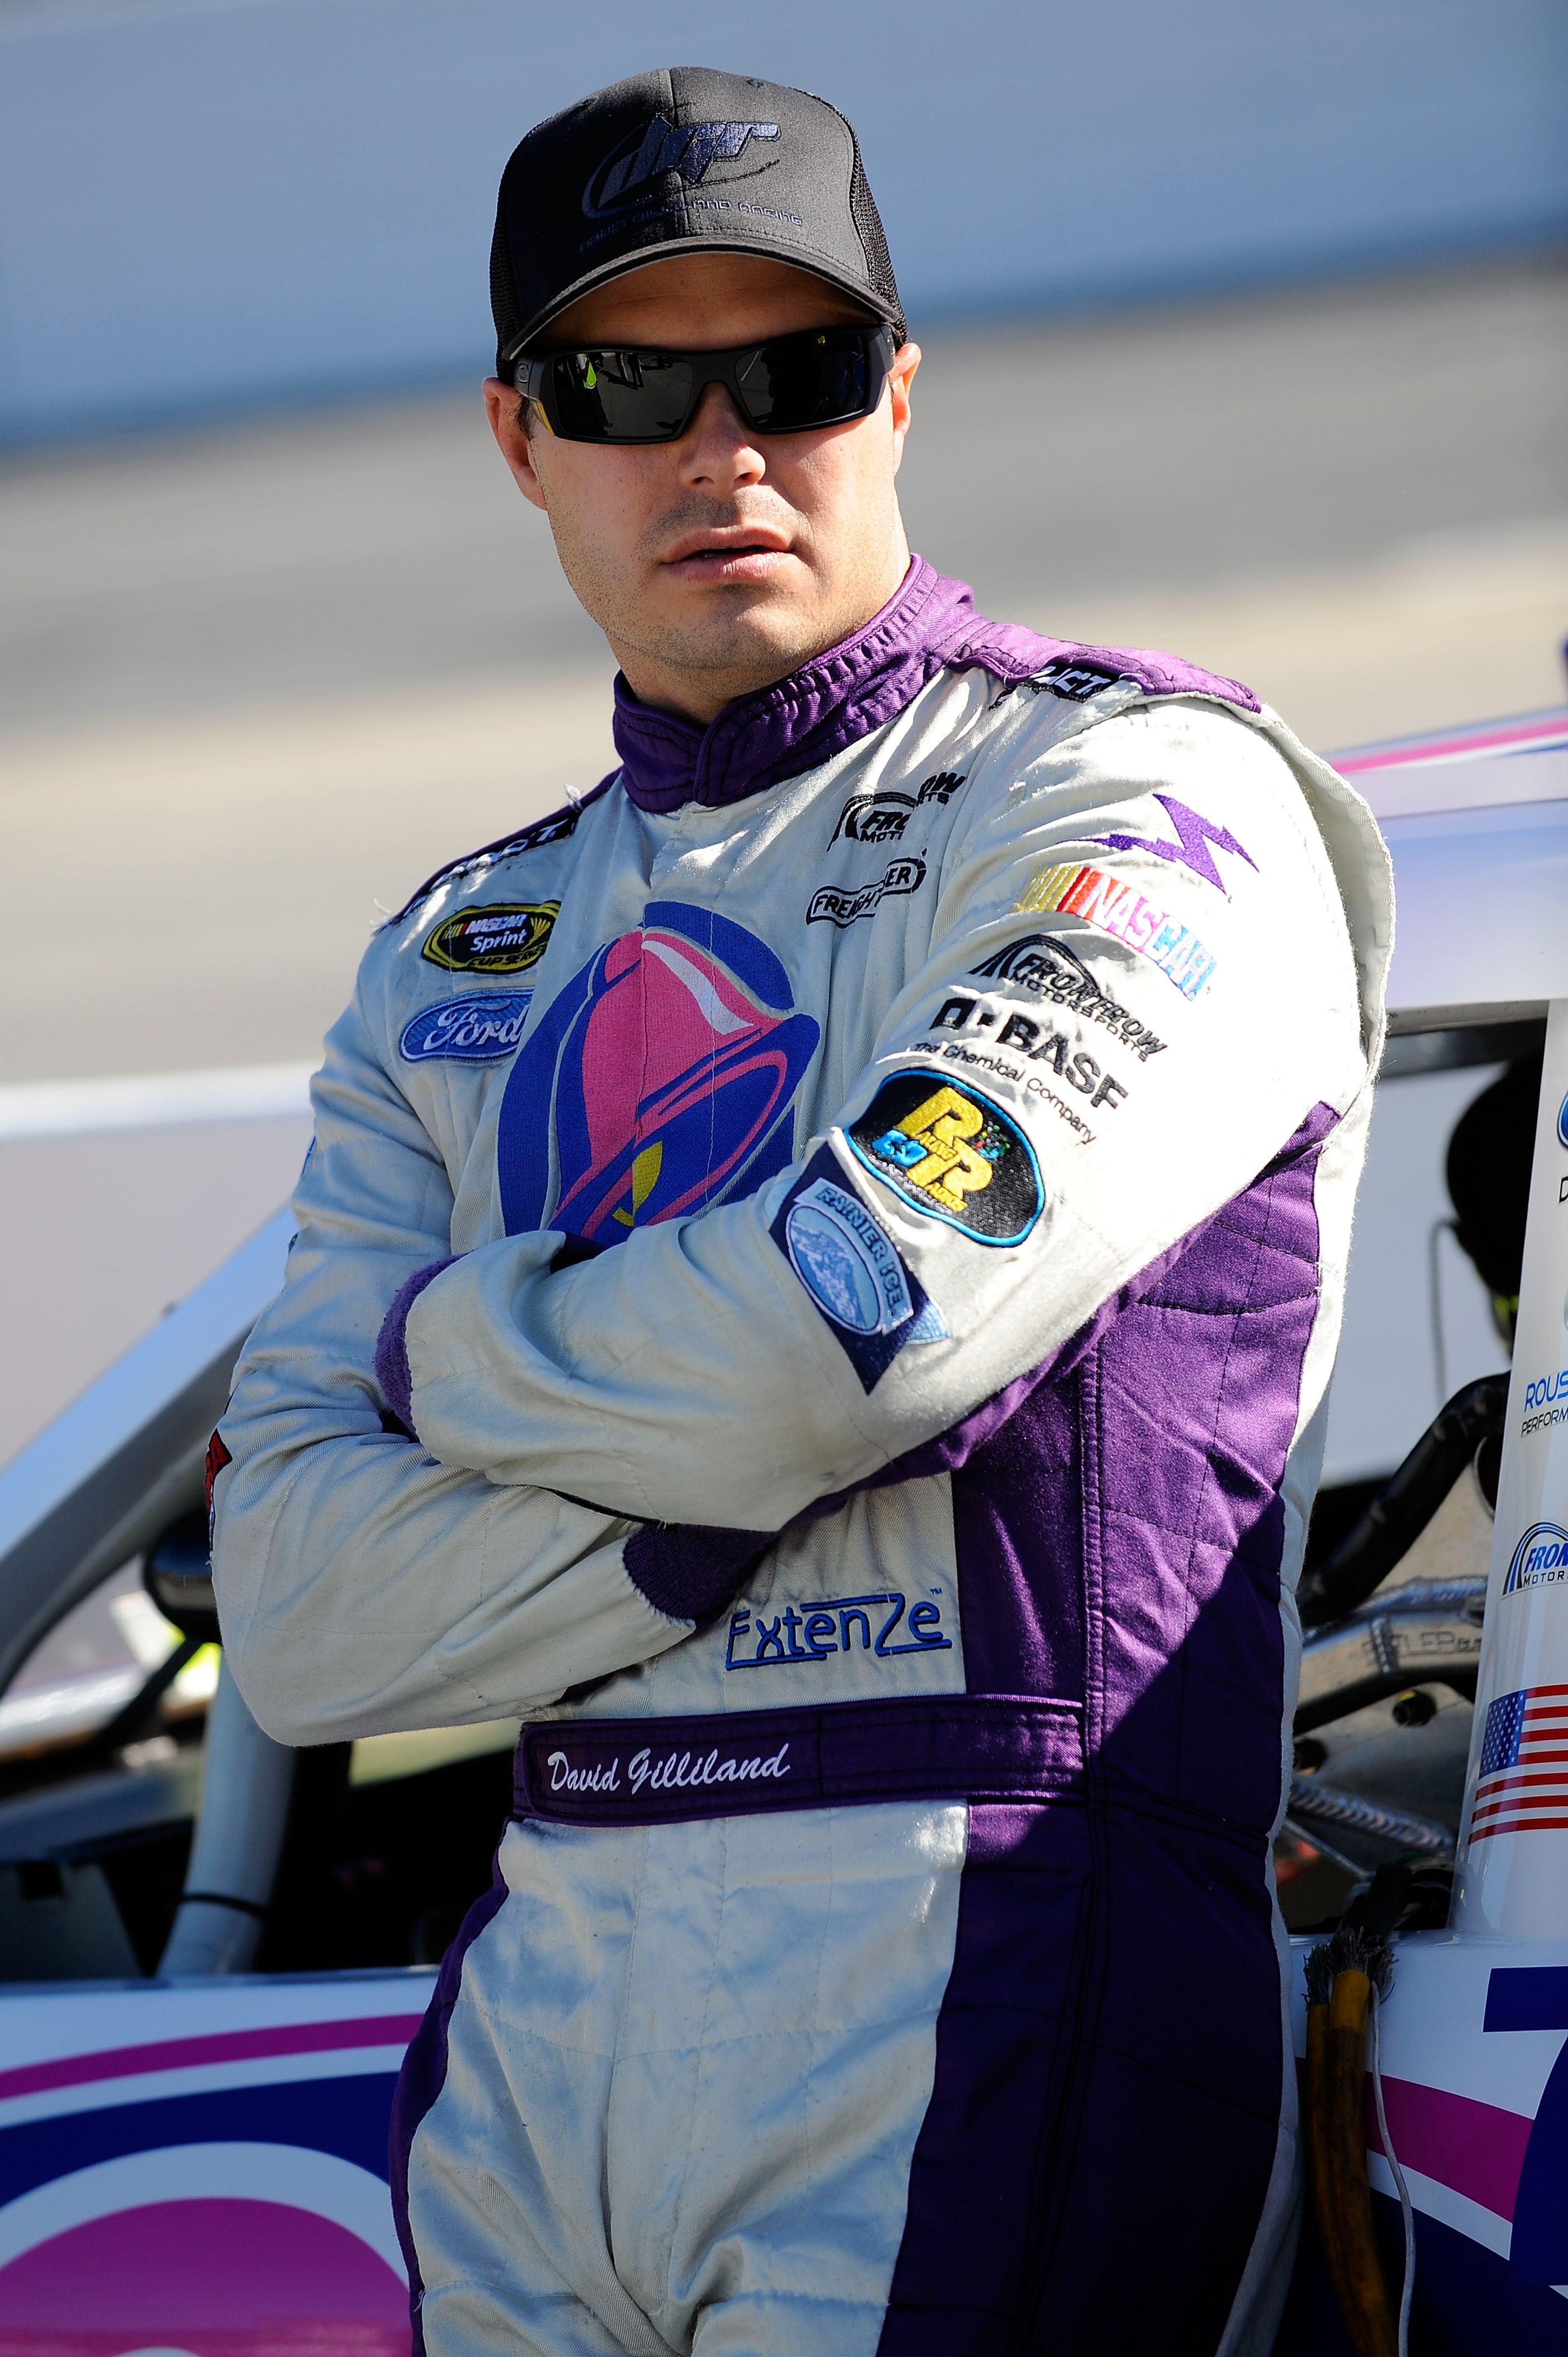 MARTINSVILLE, VA - OCTOBER 22:  David Gilliland, driver of the #37 Taco Bell Ford, stands on pit road during qualifying for the NASCAR Sprint Cup Series TUMS Fast Relief 500 at Martinsville Speedway on October 22, 2010 in Martinsville, Virginia.  (Photo b